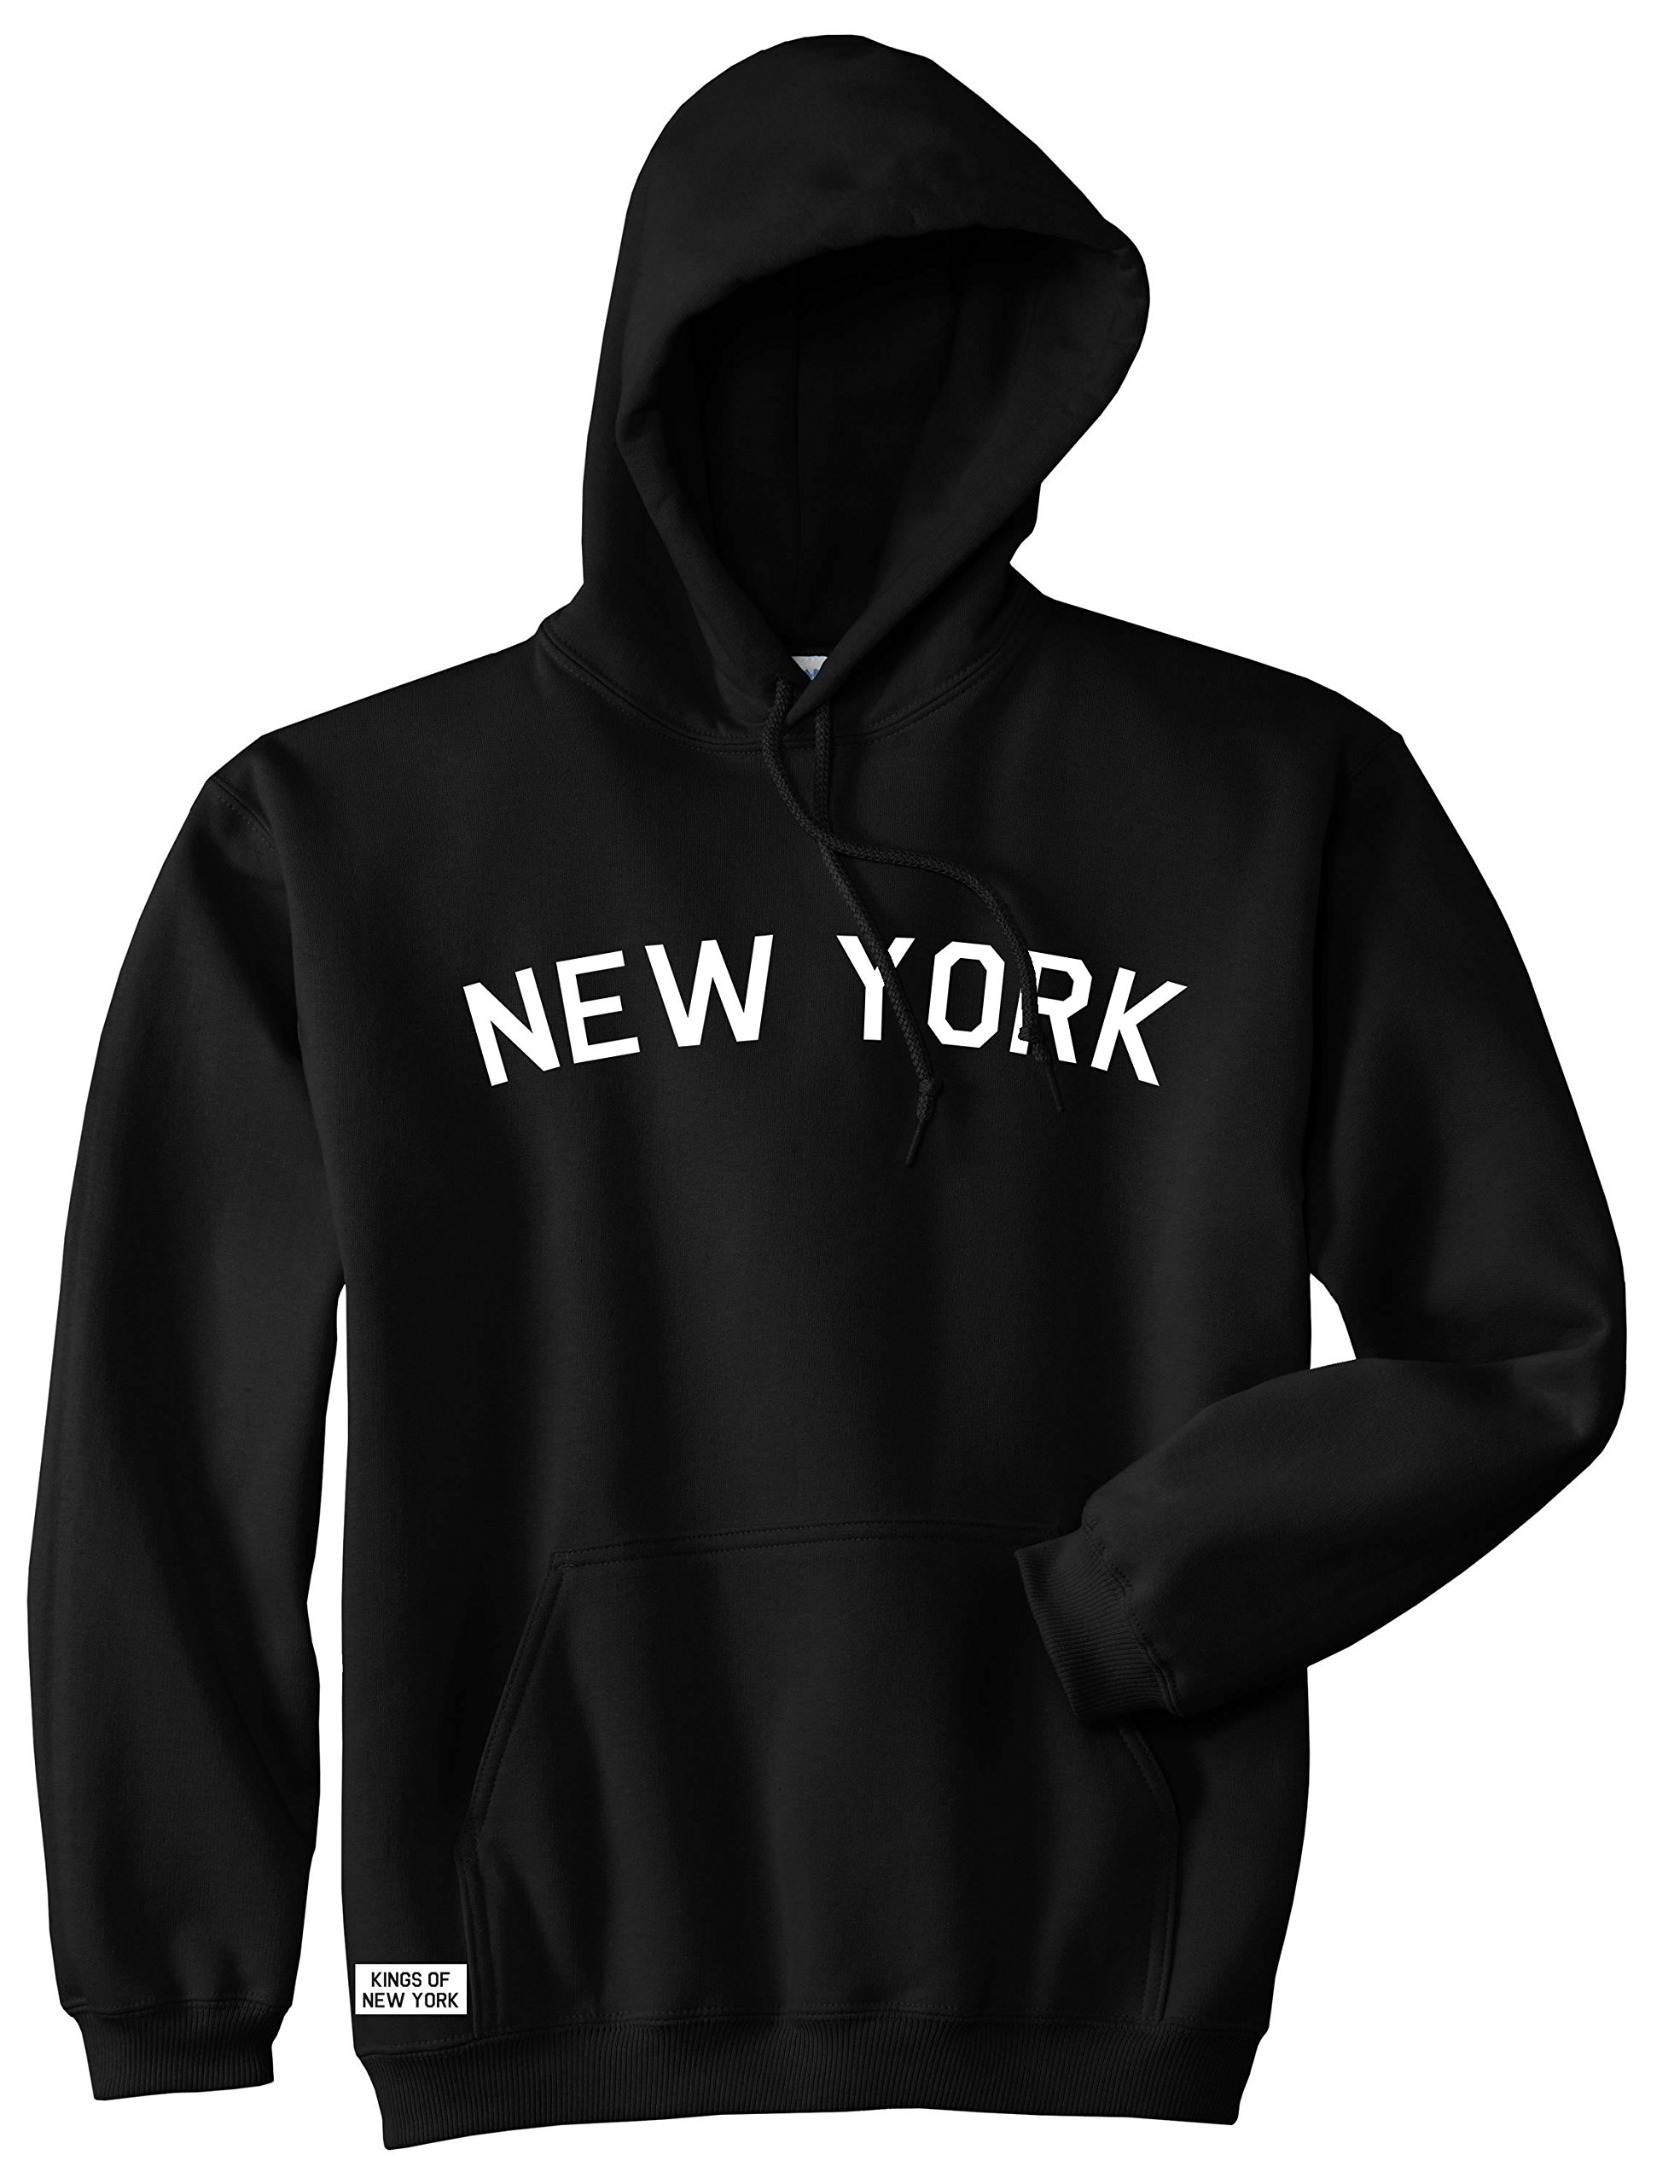 Kings Of NY New York Arch Chest NYC Manhattan Soho Uptown Pullover Hoody Sweatshirt Large Black